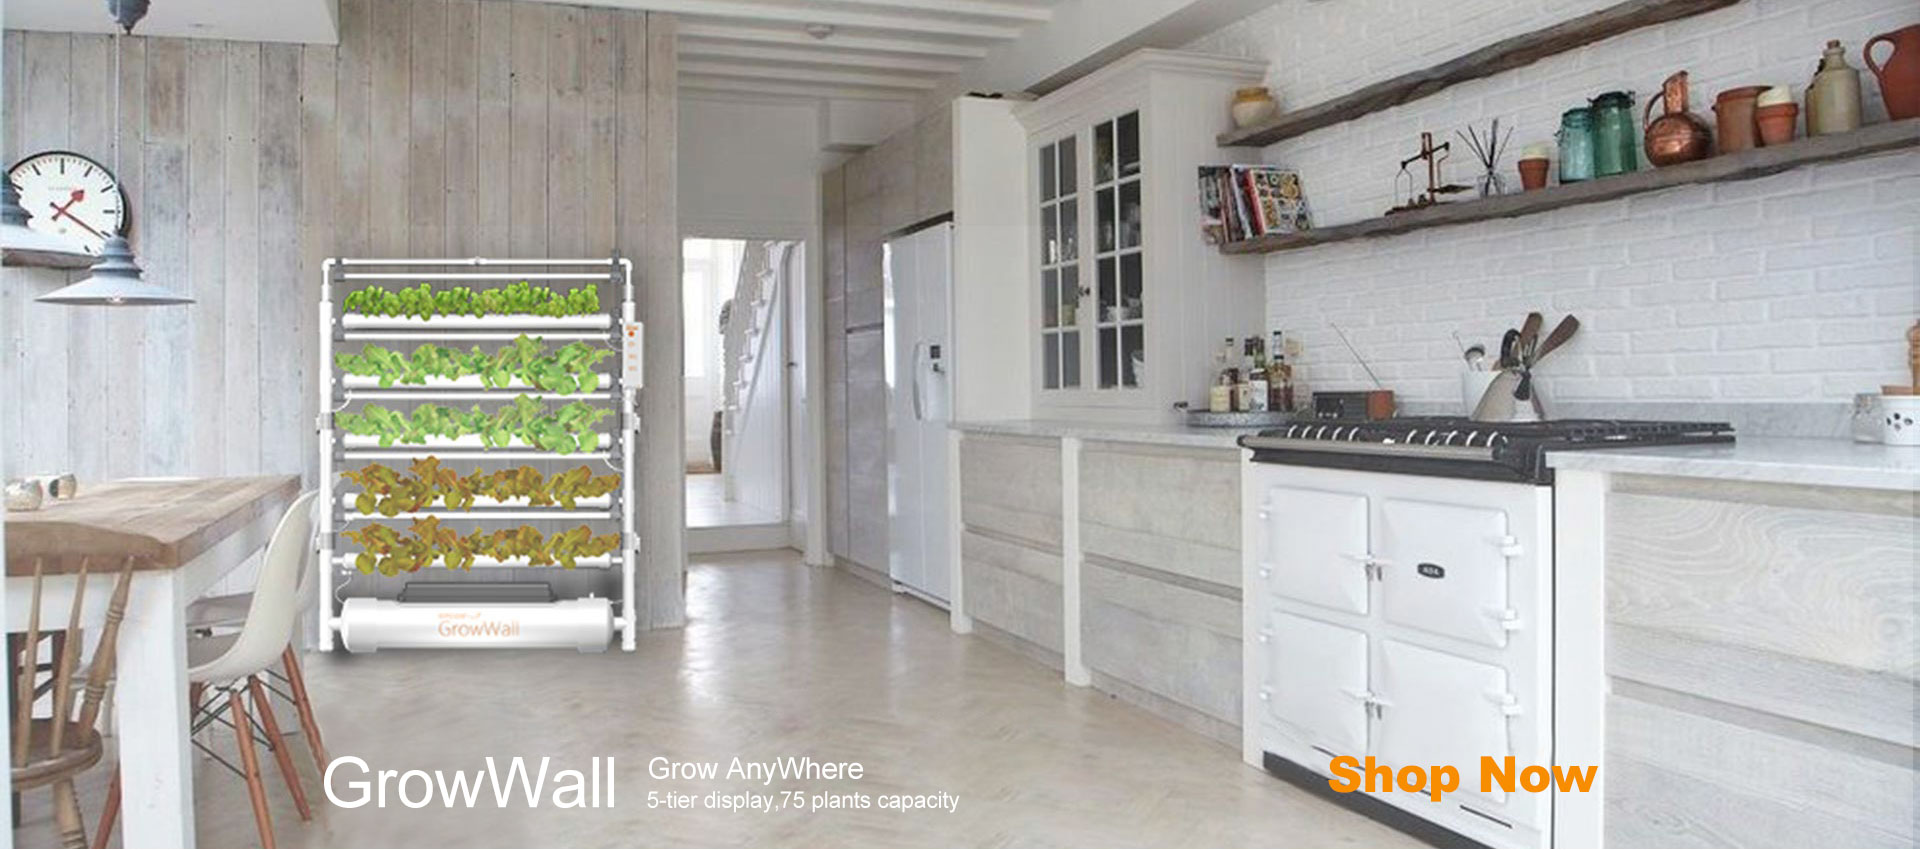 GrowWall-Hydroponics,hydroponic grow system,Grow Anywhere